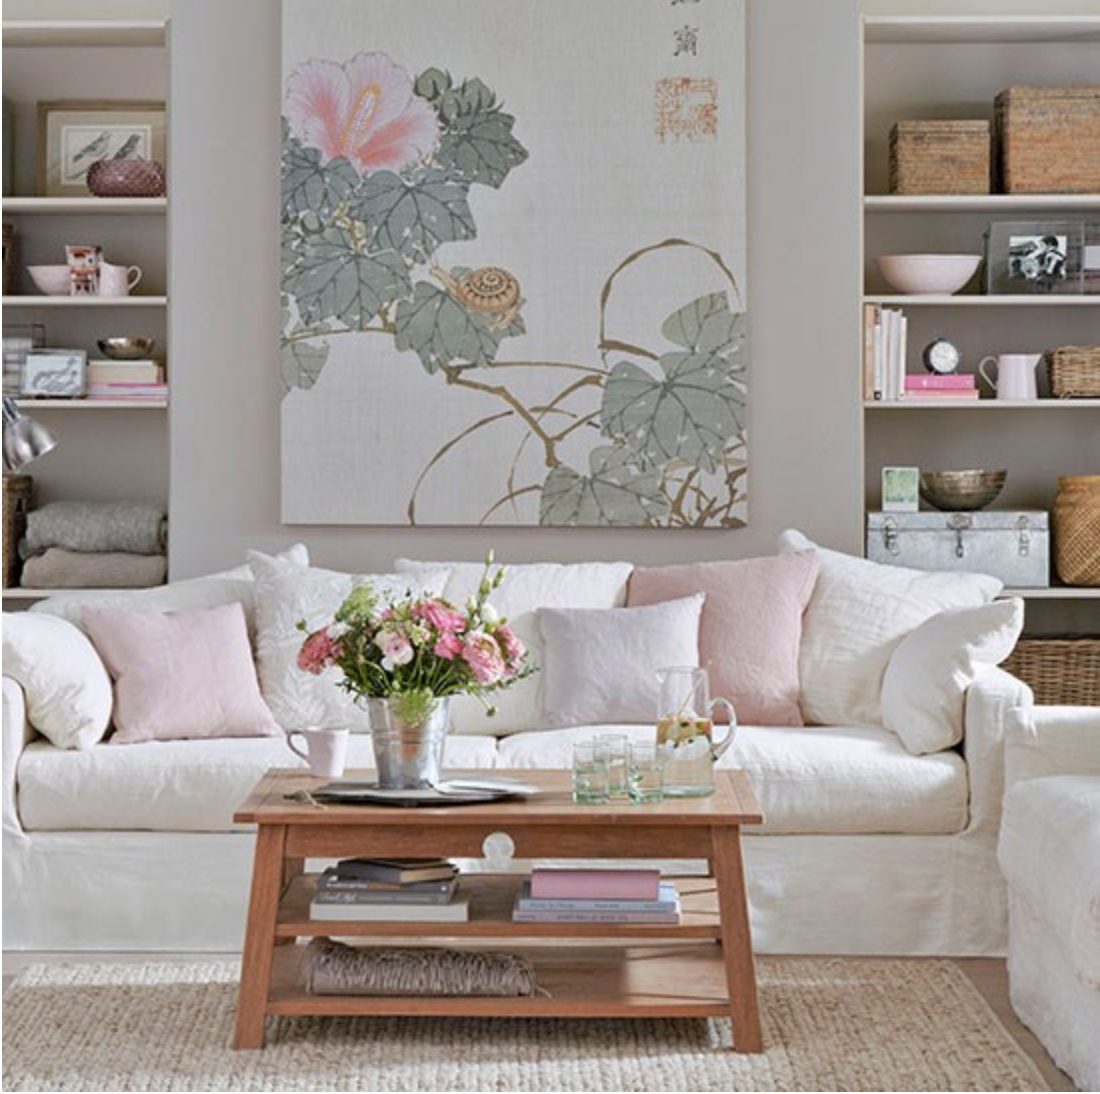 Salas pequenas romanticas e muito charmosas decorandoonline Living room ideas grey furniture